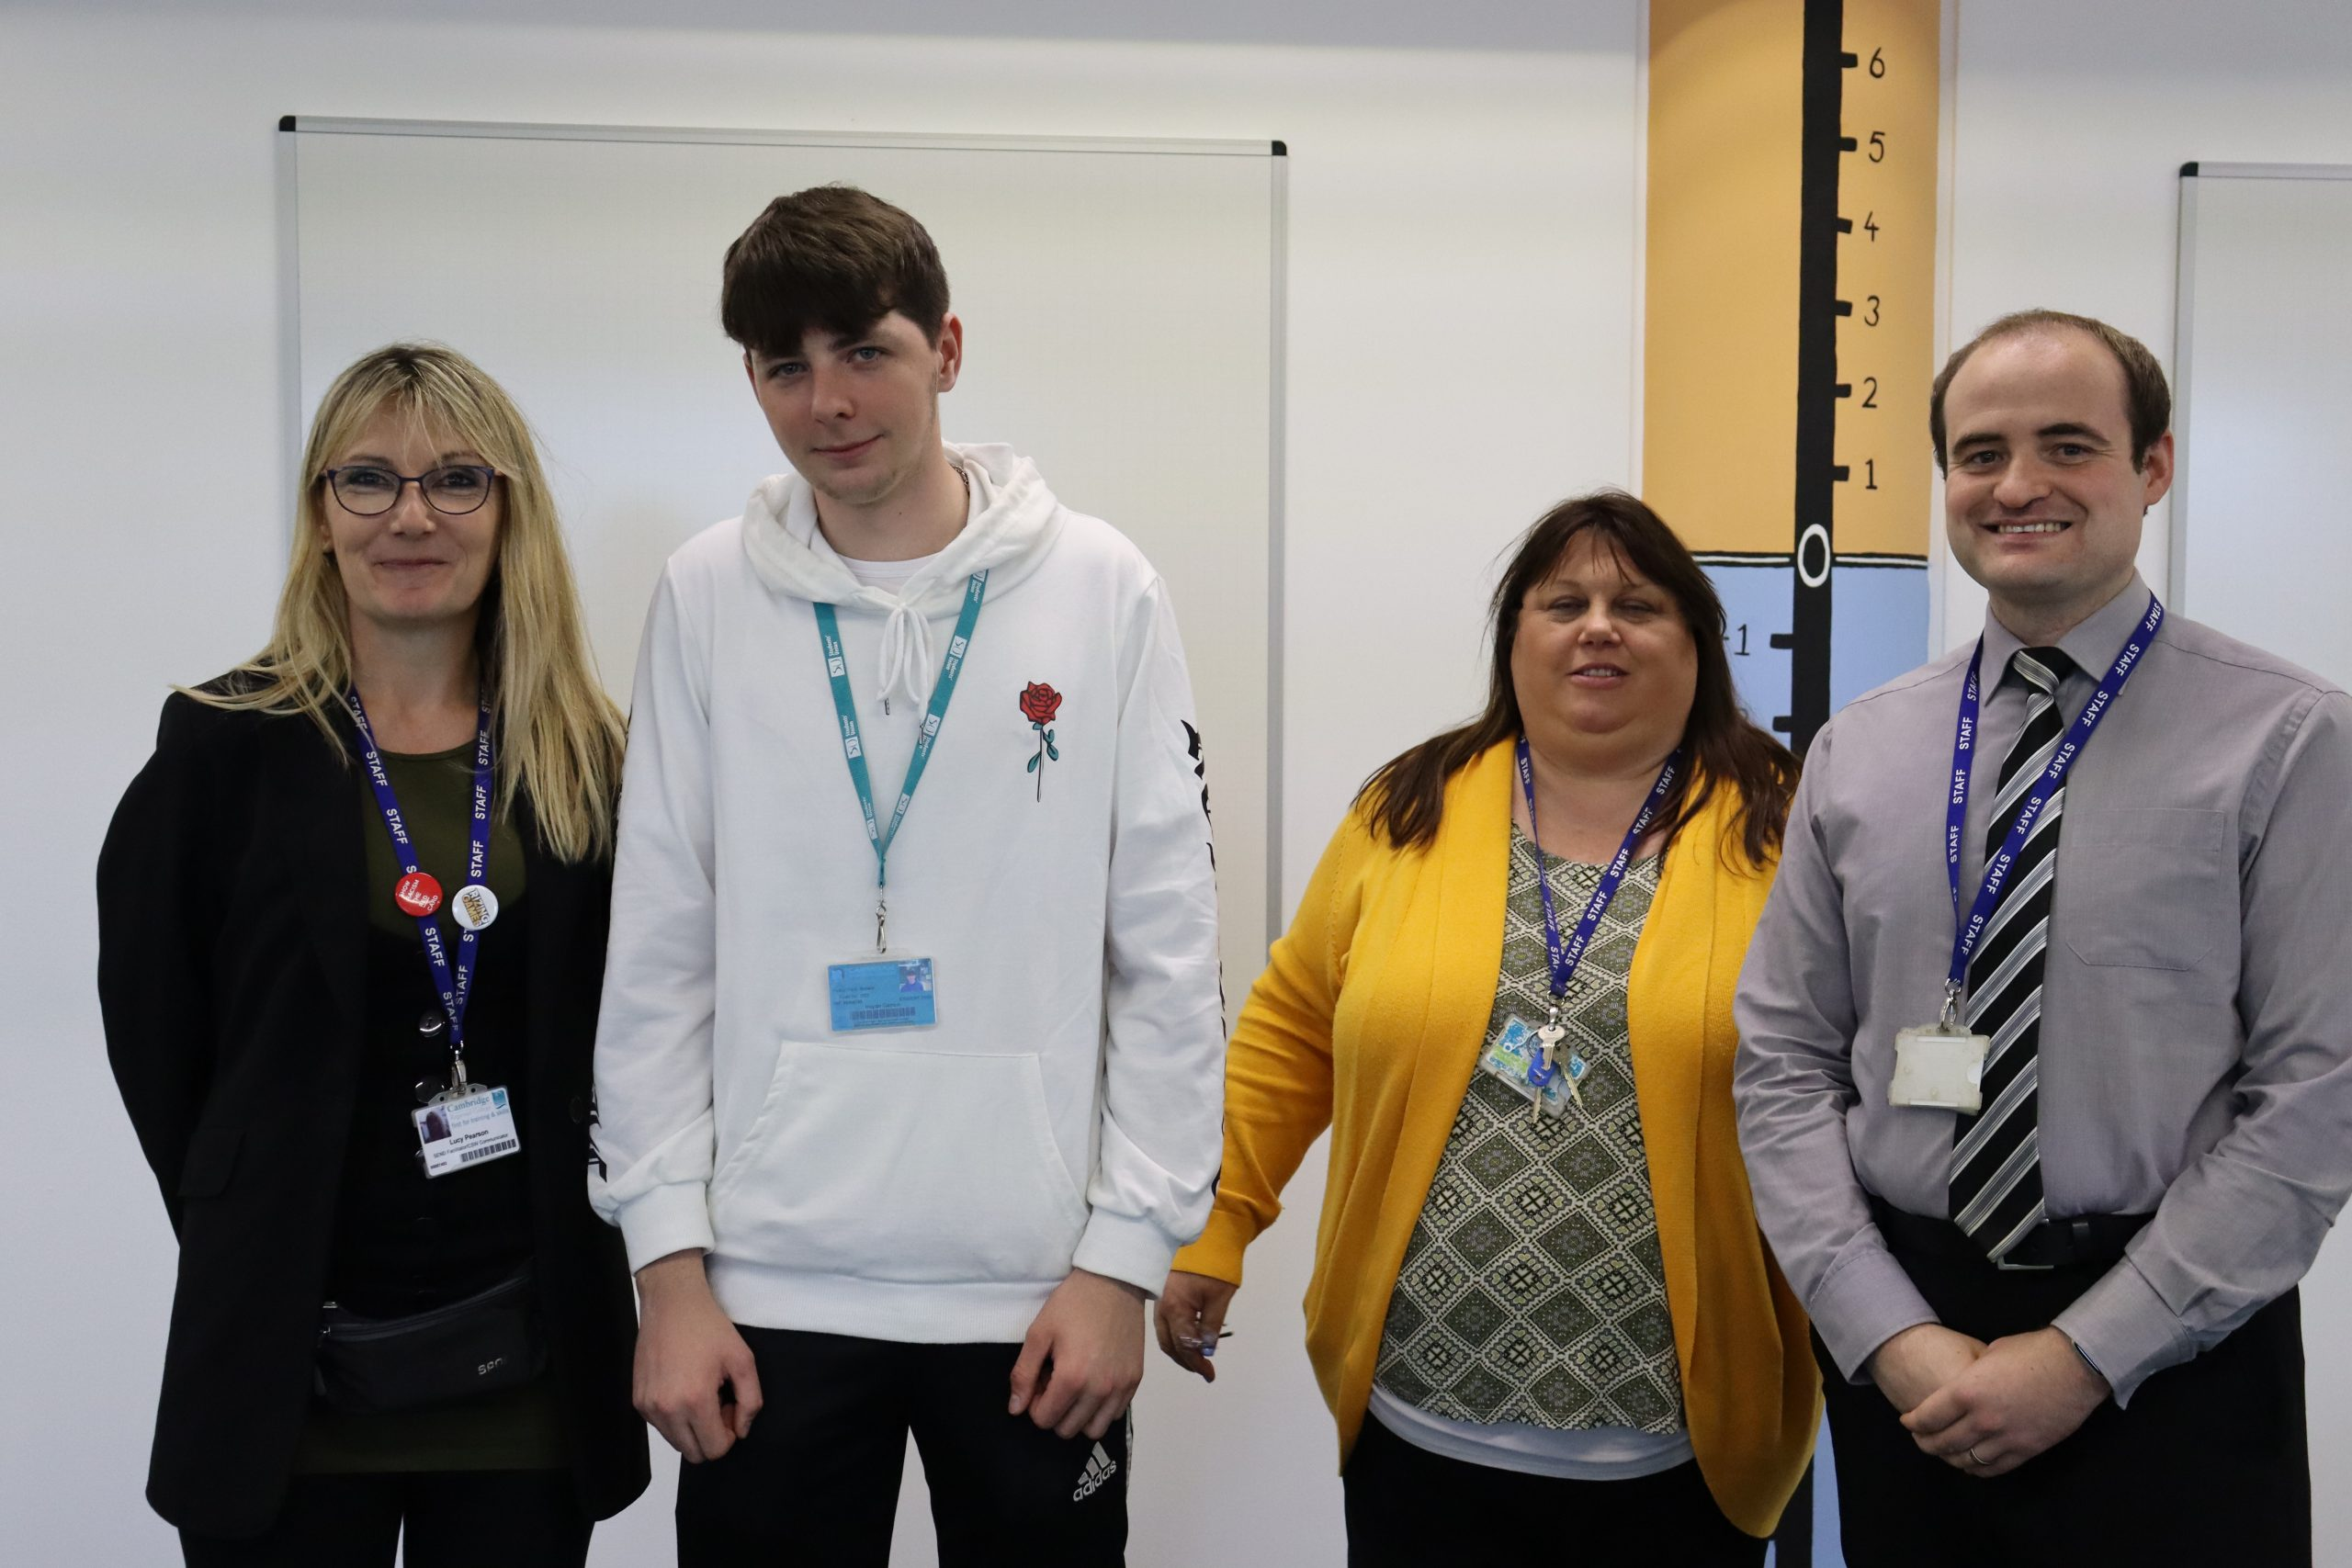 Construction student shortlisted in AoC Awards